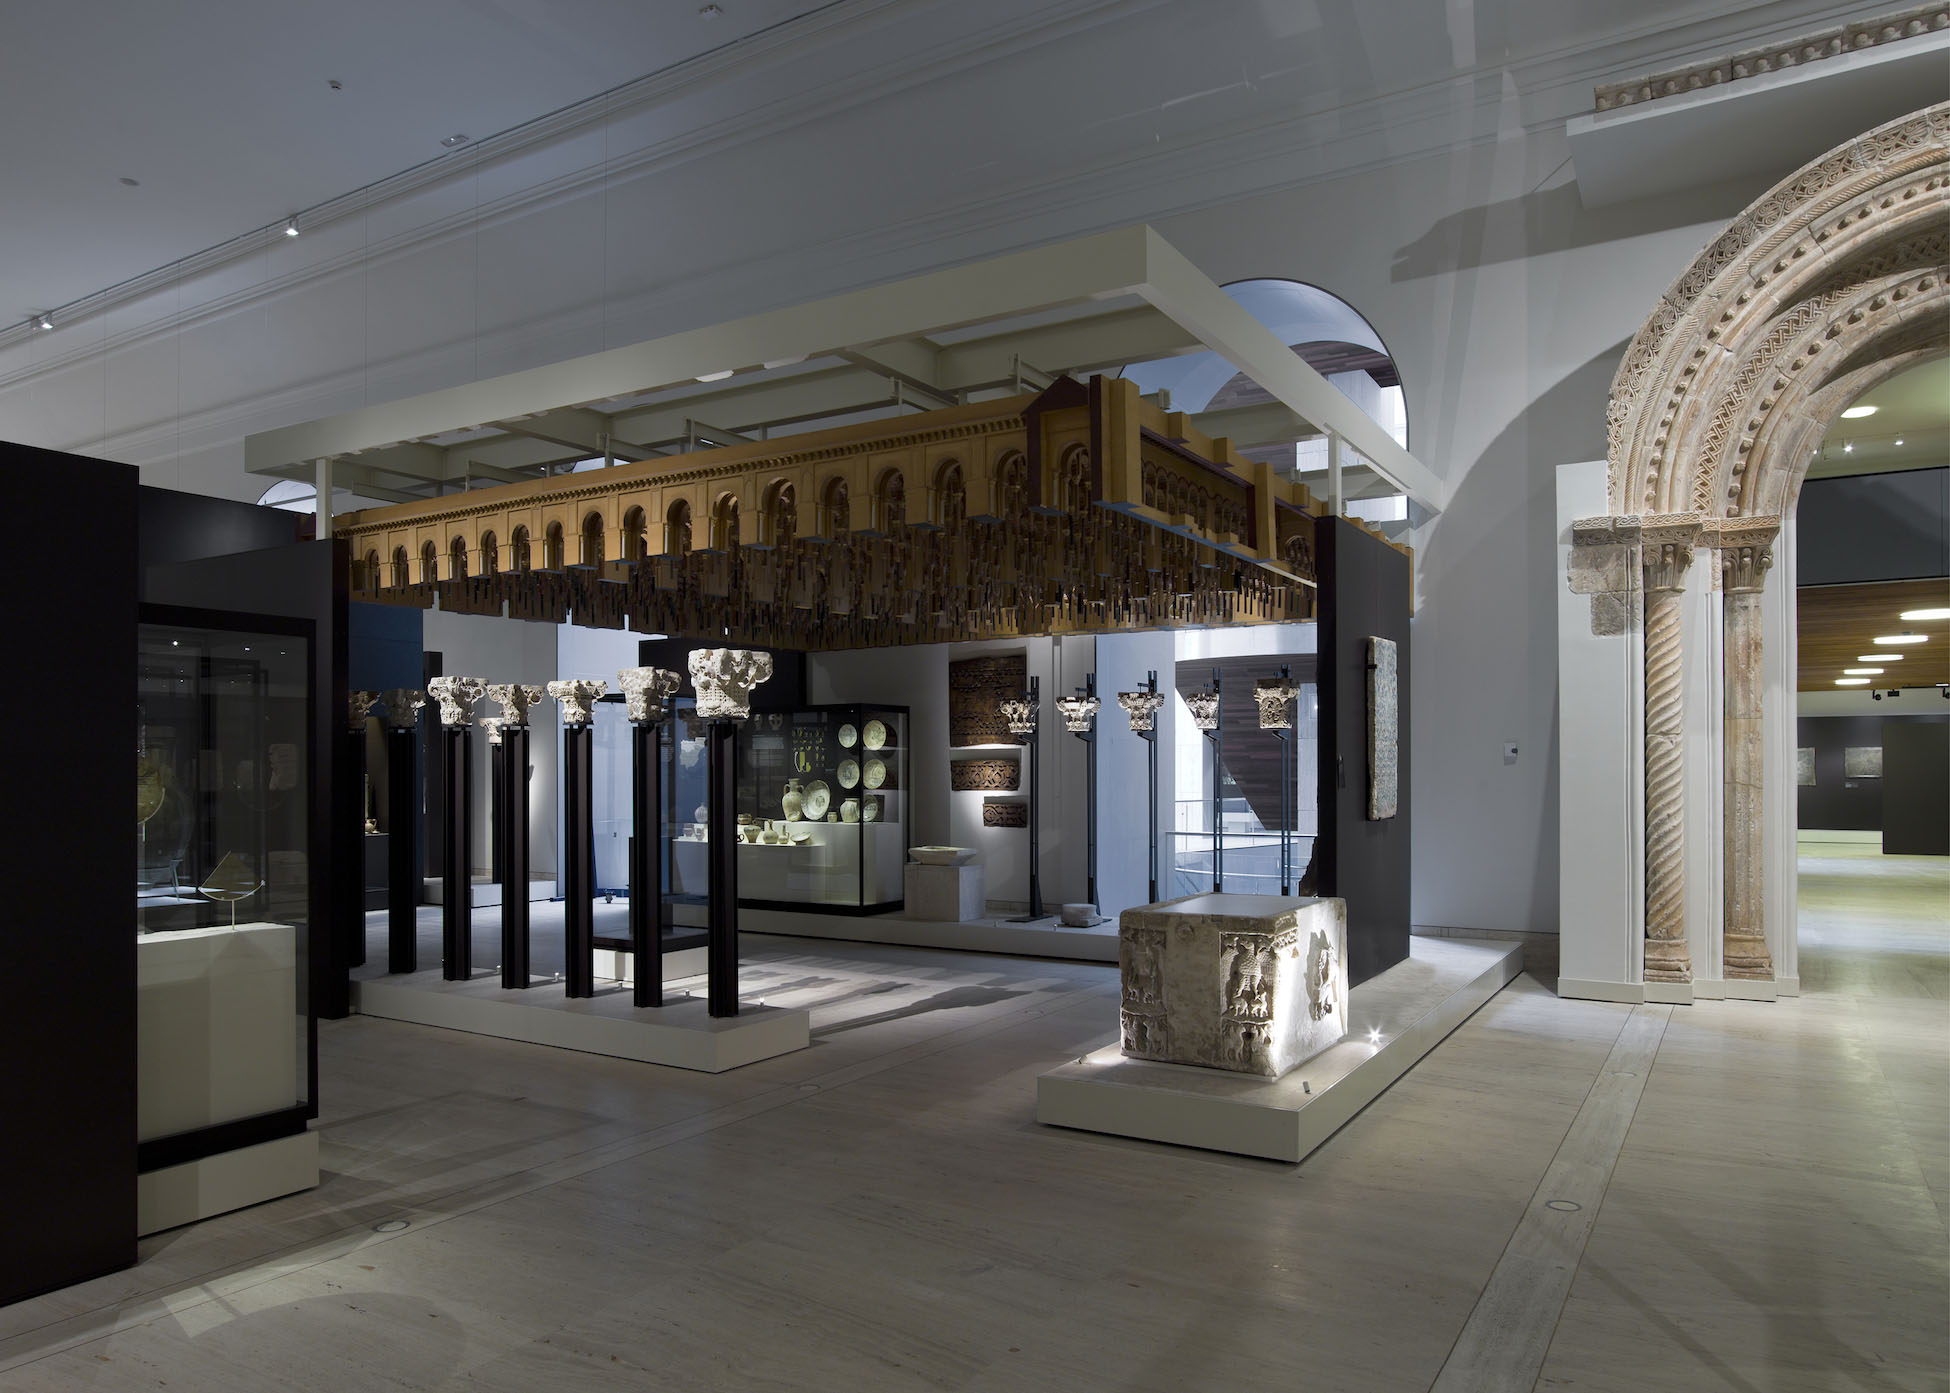 """Fig. 4. The Al-Andalus section of the Museo Arqueológico Nacional's """"The Medieval World"""" gallery, with a scale model of the Great Mosque at Córdoba made by Jordi Brunet, 1971, wood. Madrid, Museo Arqueológico Nacional, inv. no. 2001/83/1 (Luis Asín; courtesy Museo Arqueológico Nacional, Madrid)."""